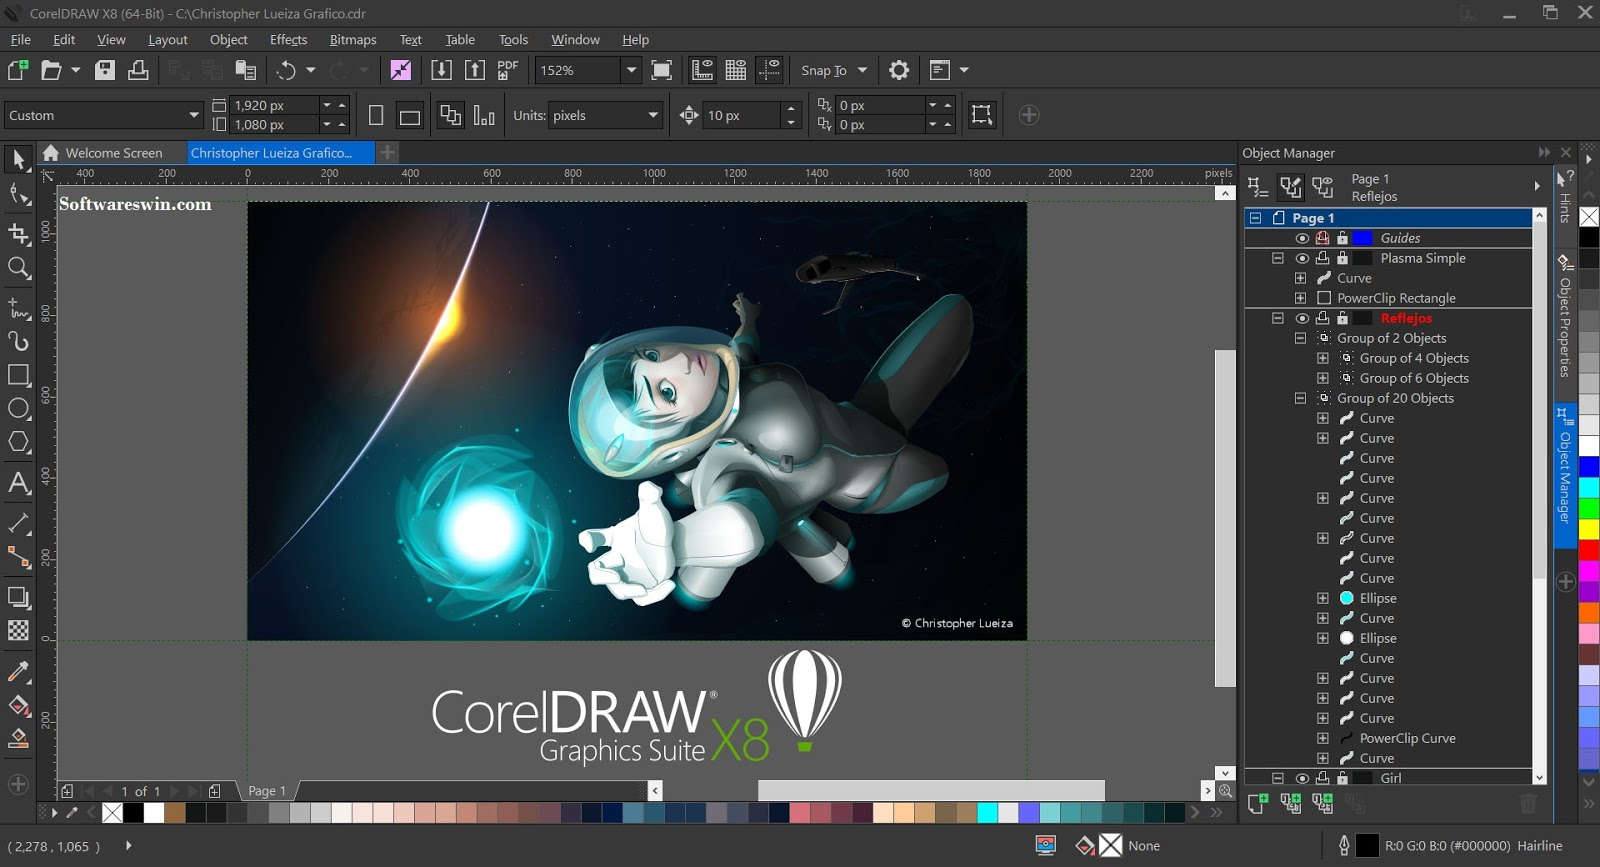 corel draw x8 free download with crack 64 bit torrent